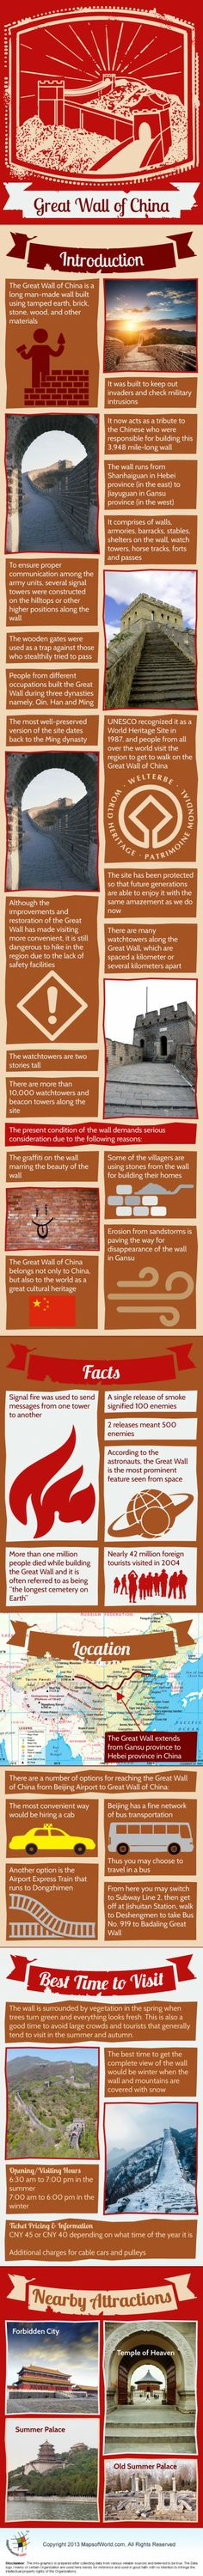 What is Great Wall of China - All about Great Wall of China [Infographic]